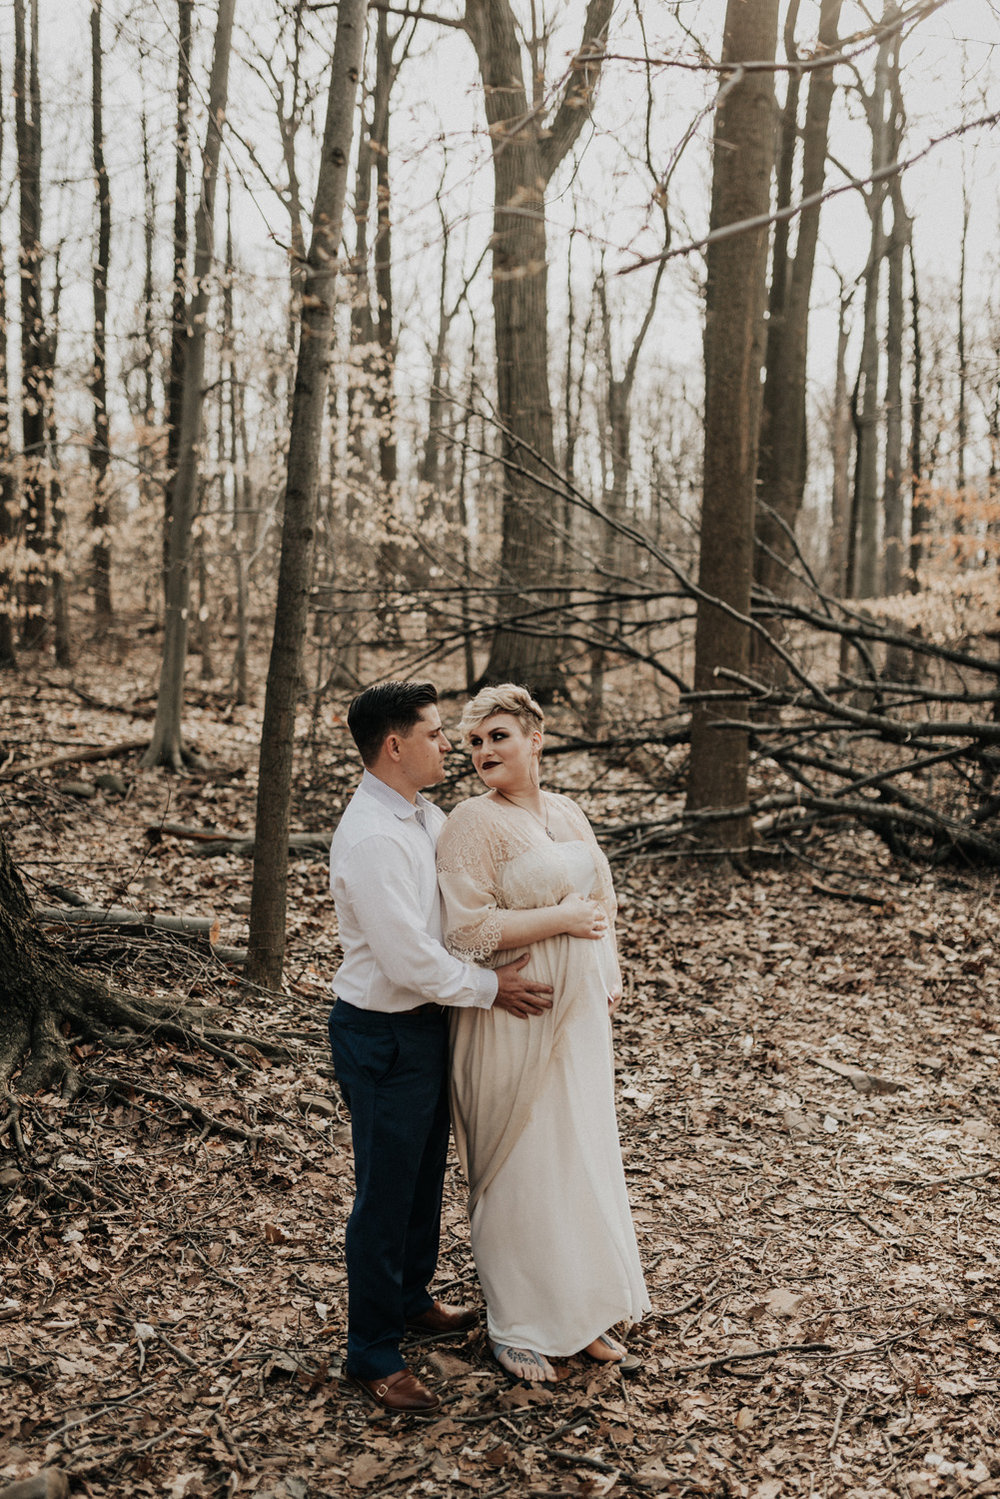 KyleWillisPhoto-Kyle-Willis-Photography-South-Mountain-Reservation-Branch-Brook-Park-Chery-Blossom-Festival-Newark-New-Jersey-Maternity-Engaement-Couple-Adventure-Photographer-Philadelphia-York-City